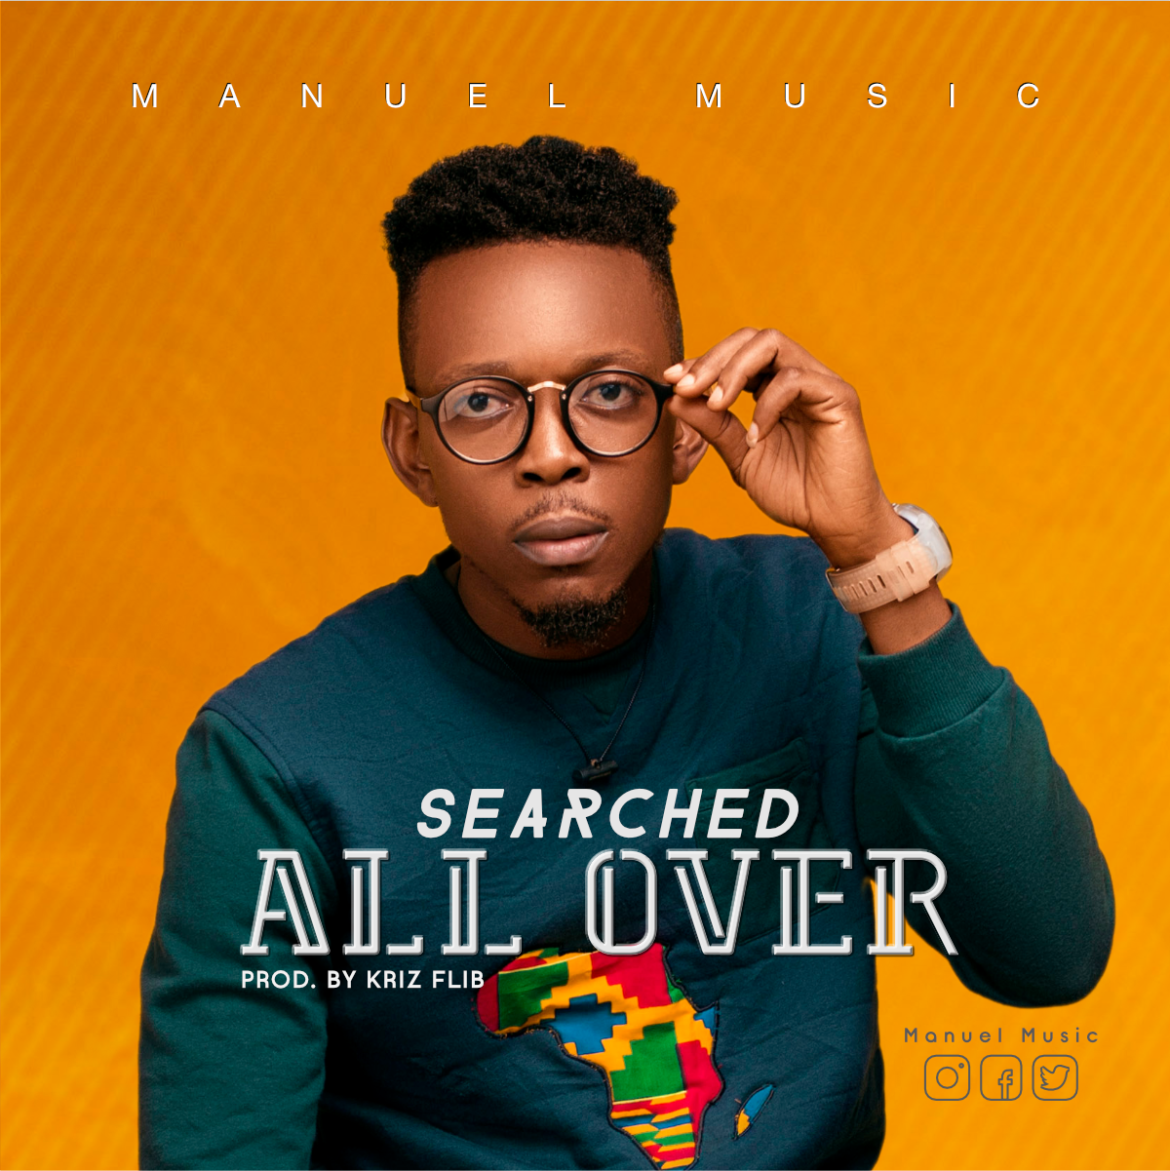 music-manuel-music-searched-all-over-iam_manuelmusic/